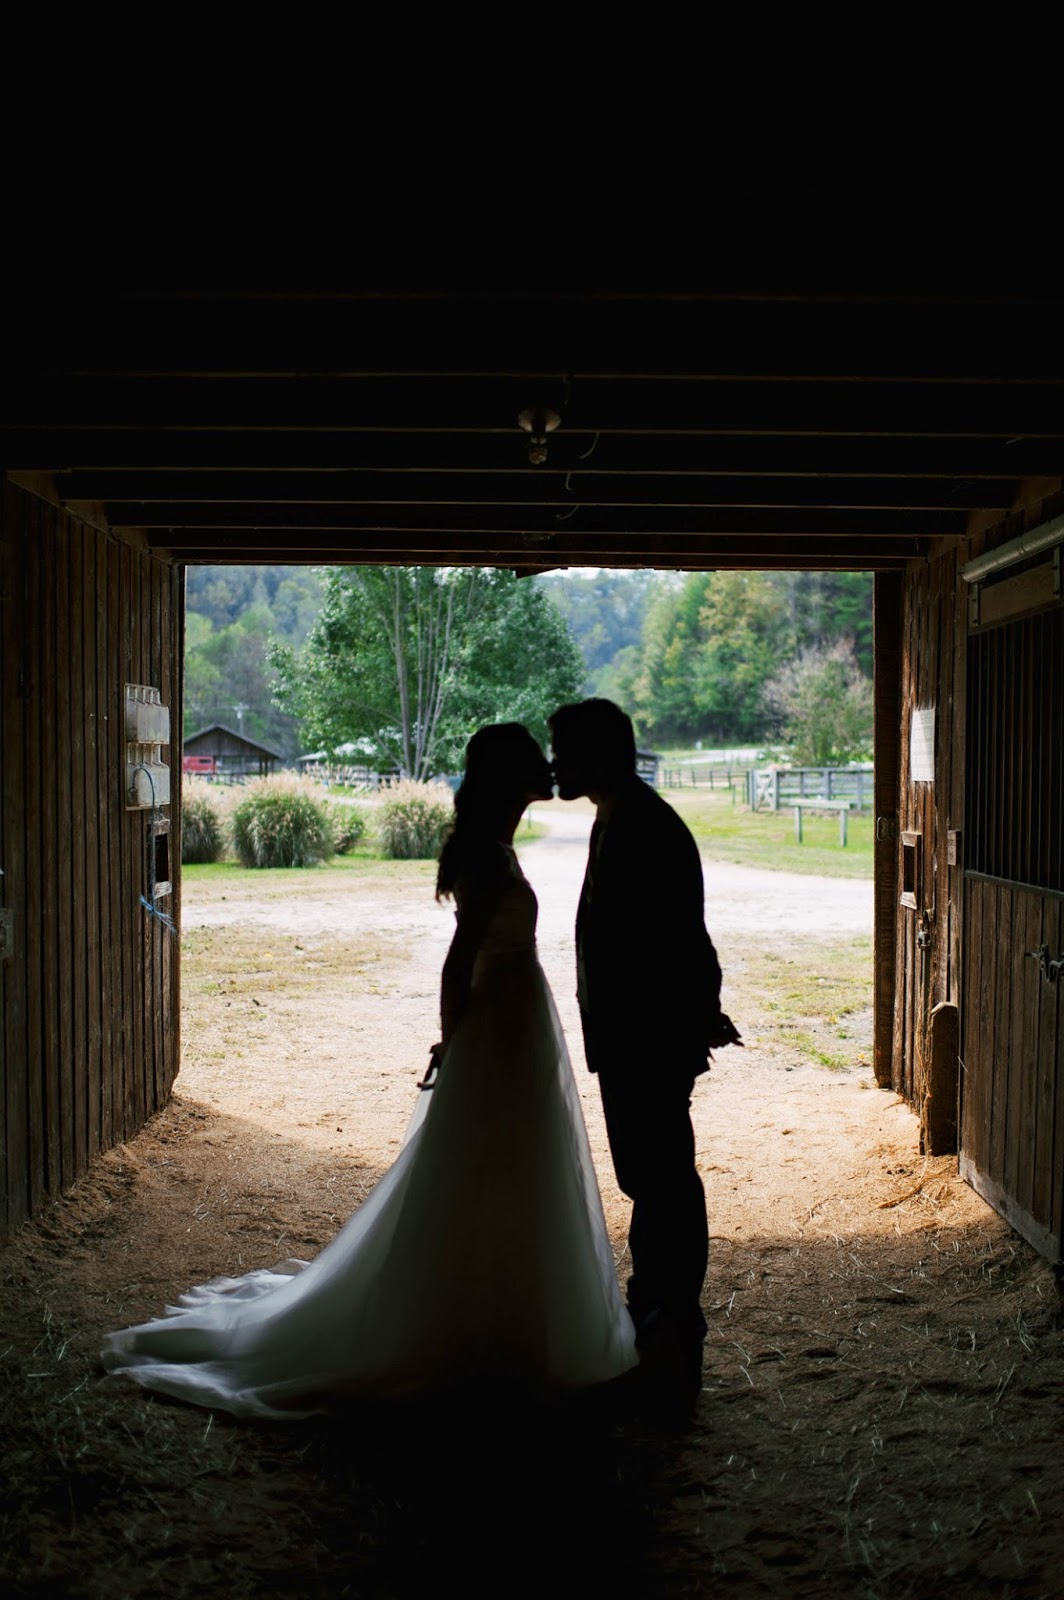 http://www.leatherwoodmountains.com/weddings-groups/weddings/